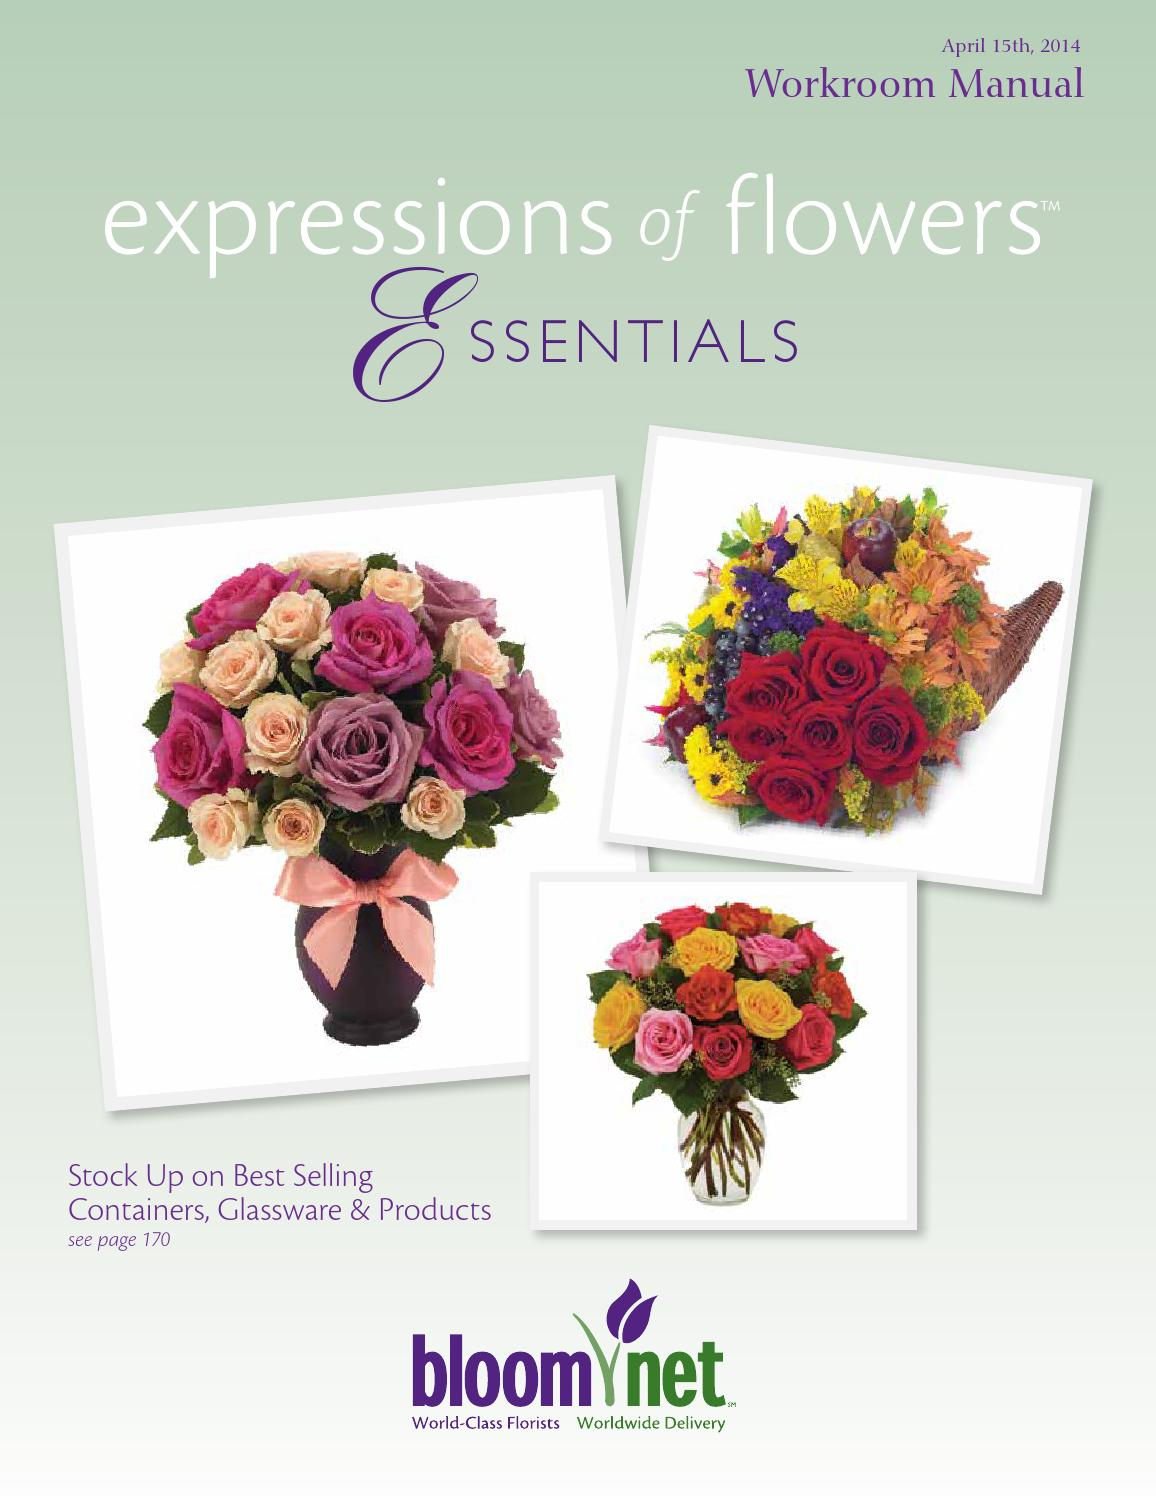 21 expressions of flowers essentials workroom manual 21 21 121 by ...